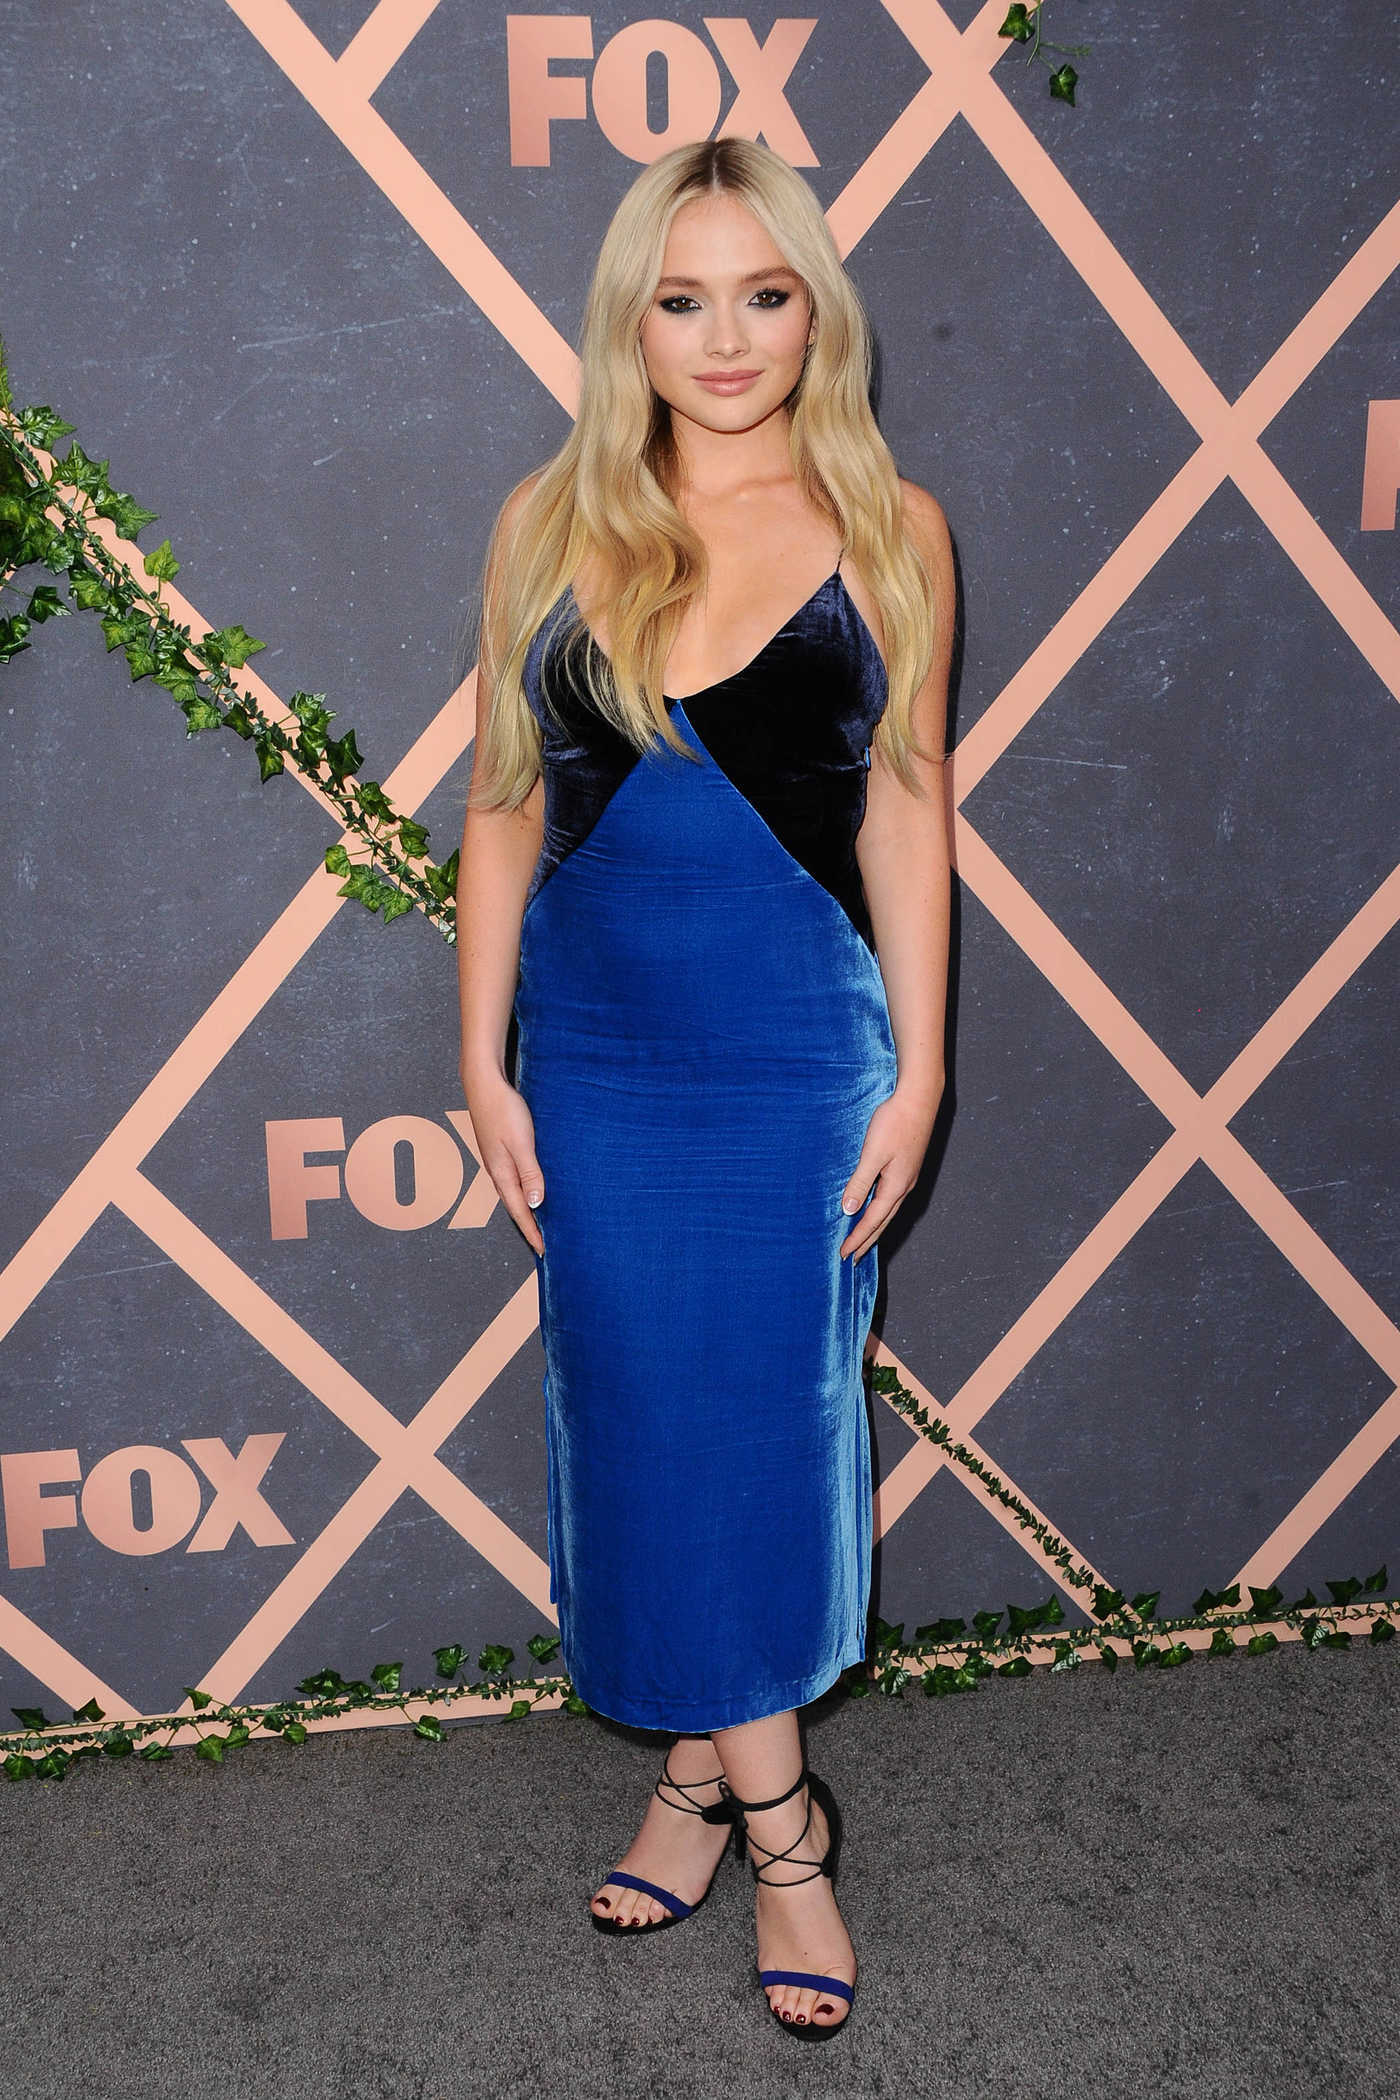 Natalie Alyn Lind Attends the FOX Fall Party in LA 09/25/2017